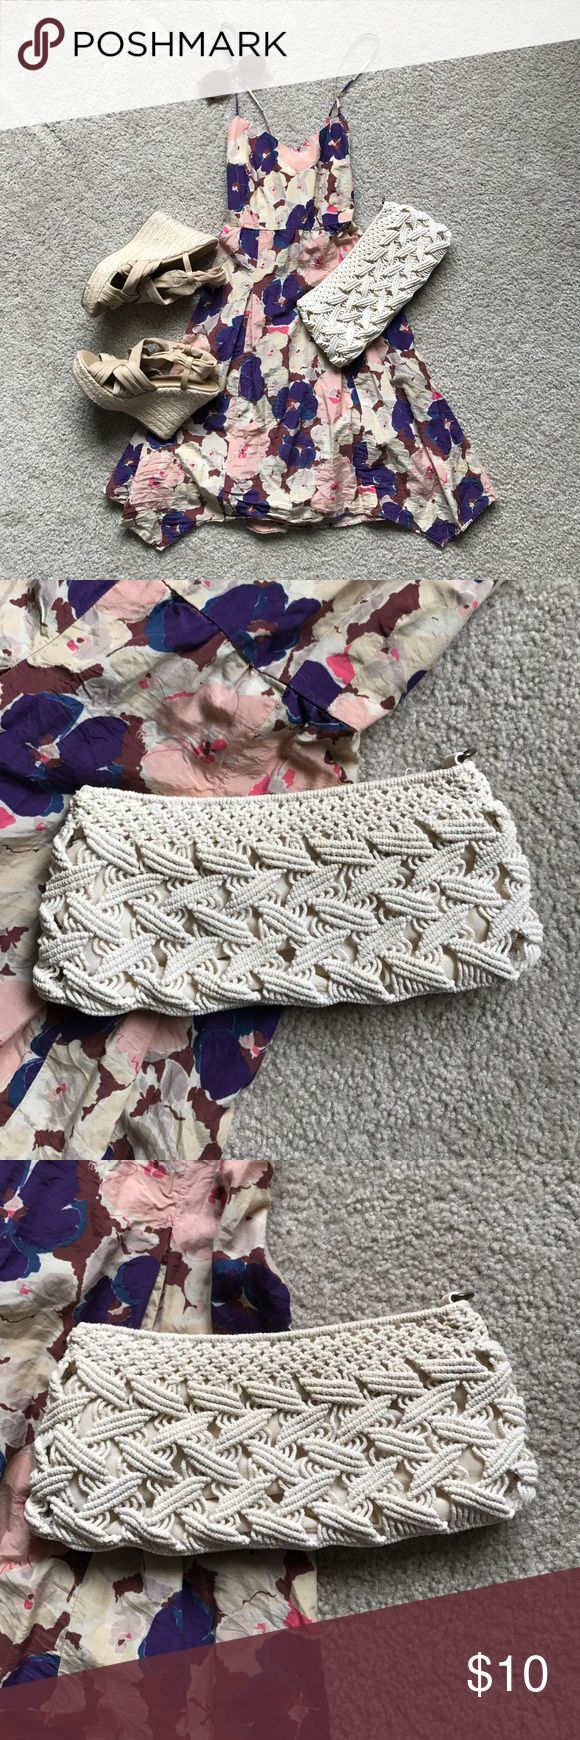 Kimchi Blue Woven Clutch, Cream Gently used Kimchi Blue soft-body clutch, no wristlet strap included. May have some discoloration and wear, but nothing noticeable. Perfect handbag for a casual night out, pair with a sun dress and neutral wedges! Kimchi Blue Bags Clutches & Wristlets